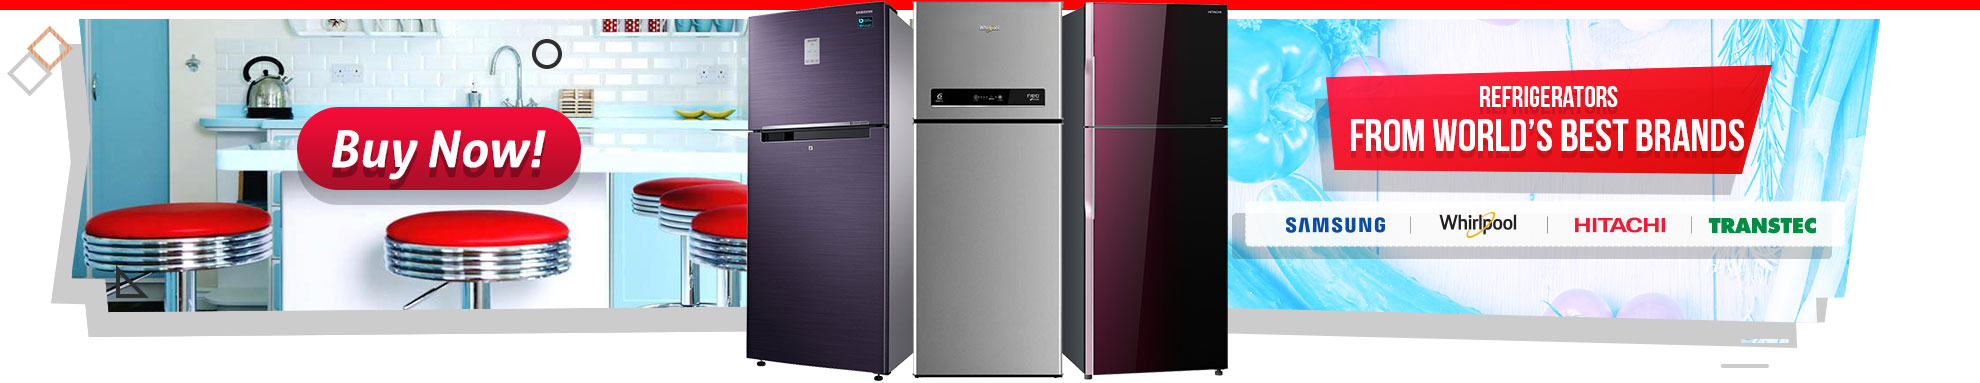 Freezer and Fridge Transcom digital bd